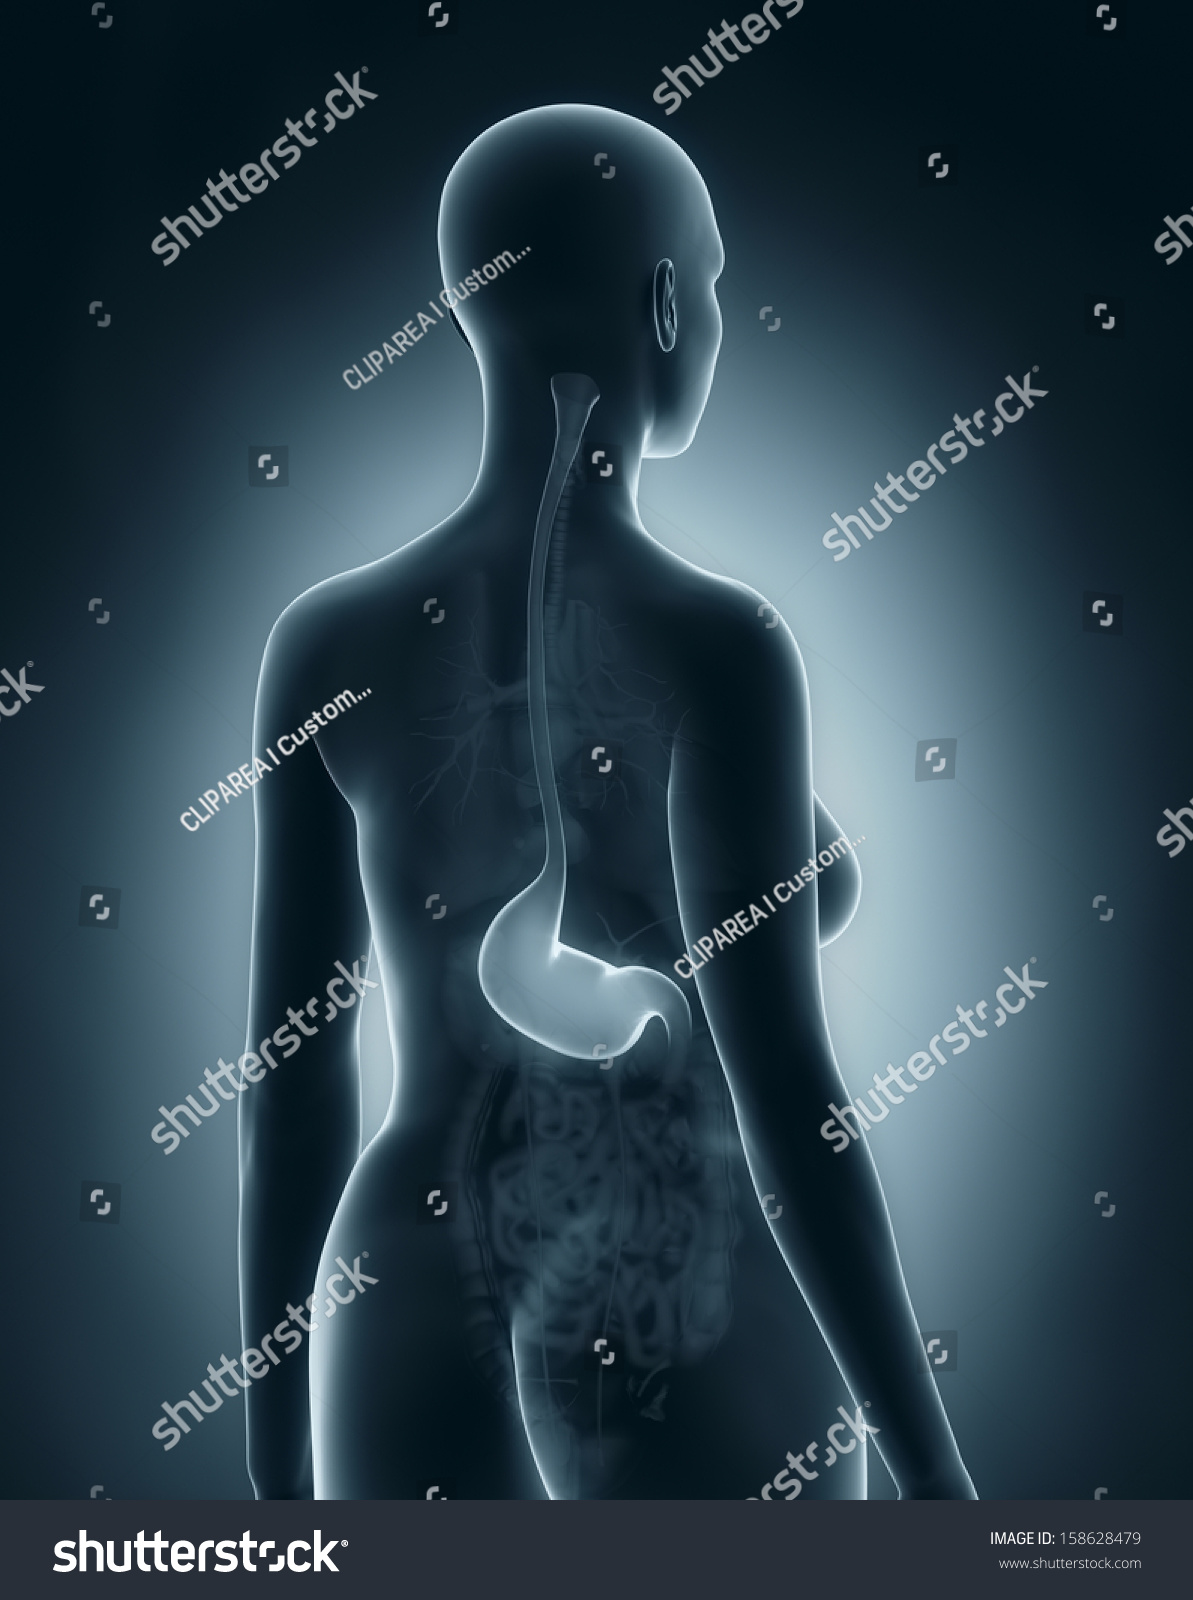 Woman stomach anatomy xray black posterior stock illustration woman stomach anatomy xray black posterior stock illustration 158628479 shutterstock ccuart